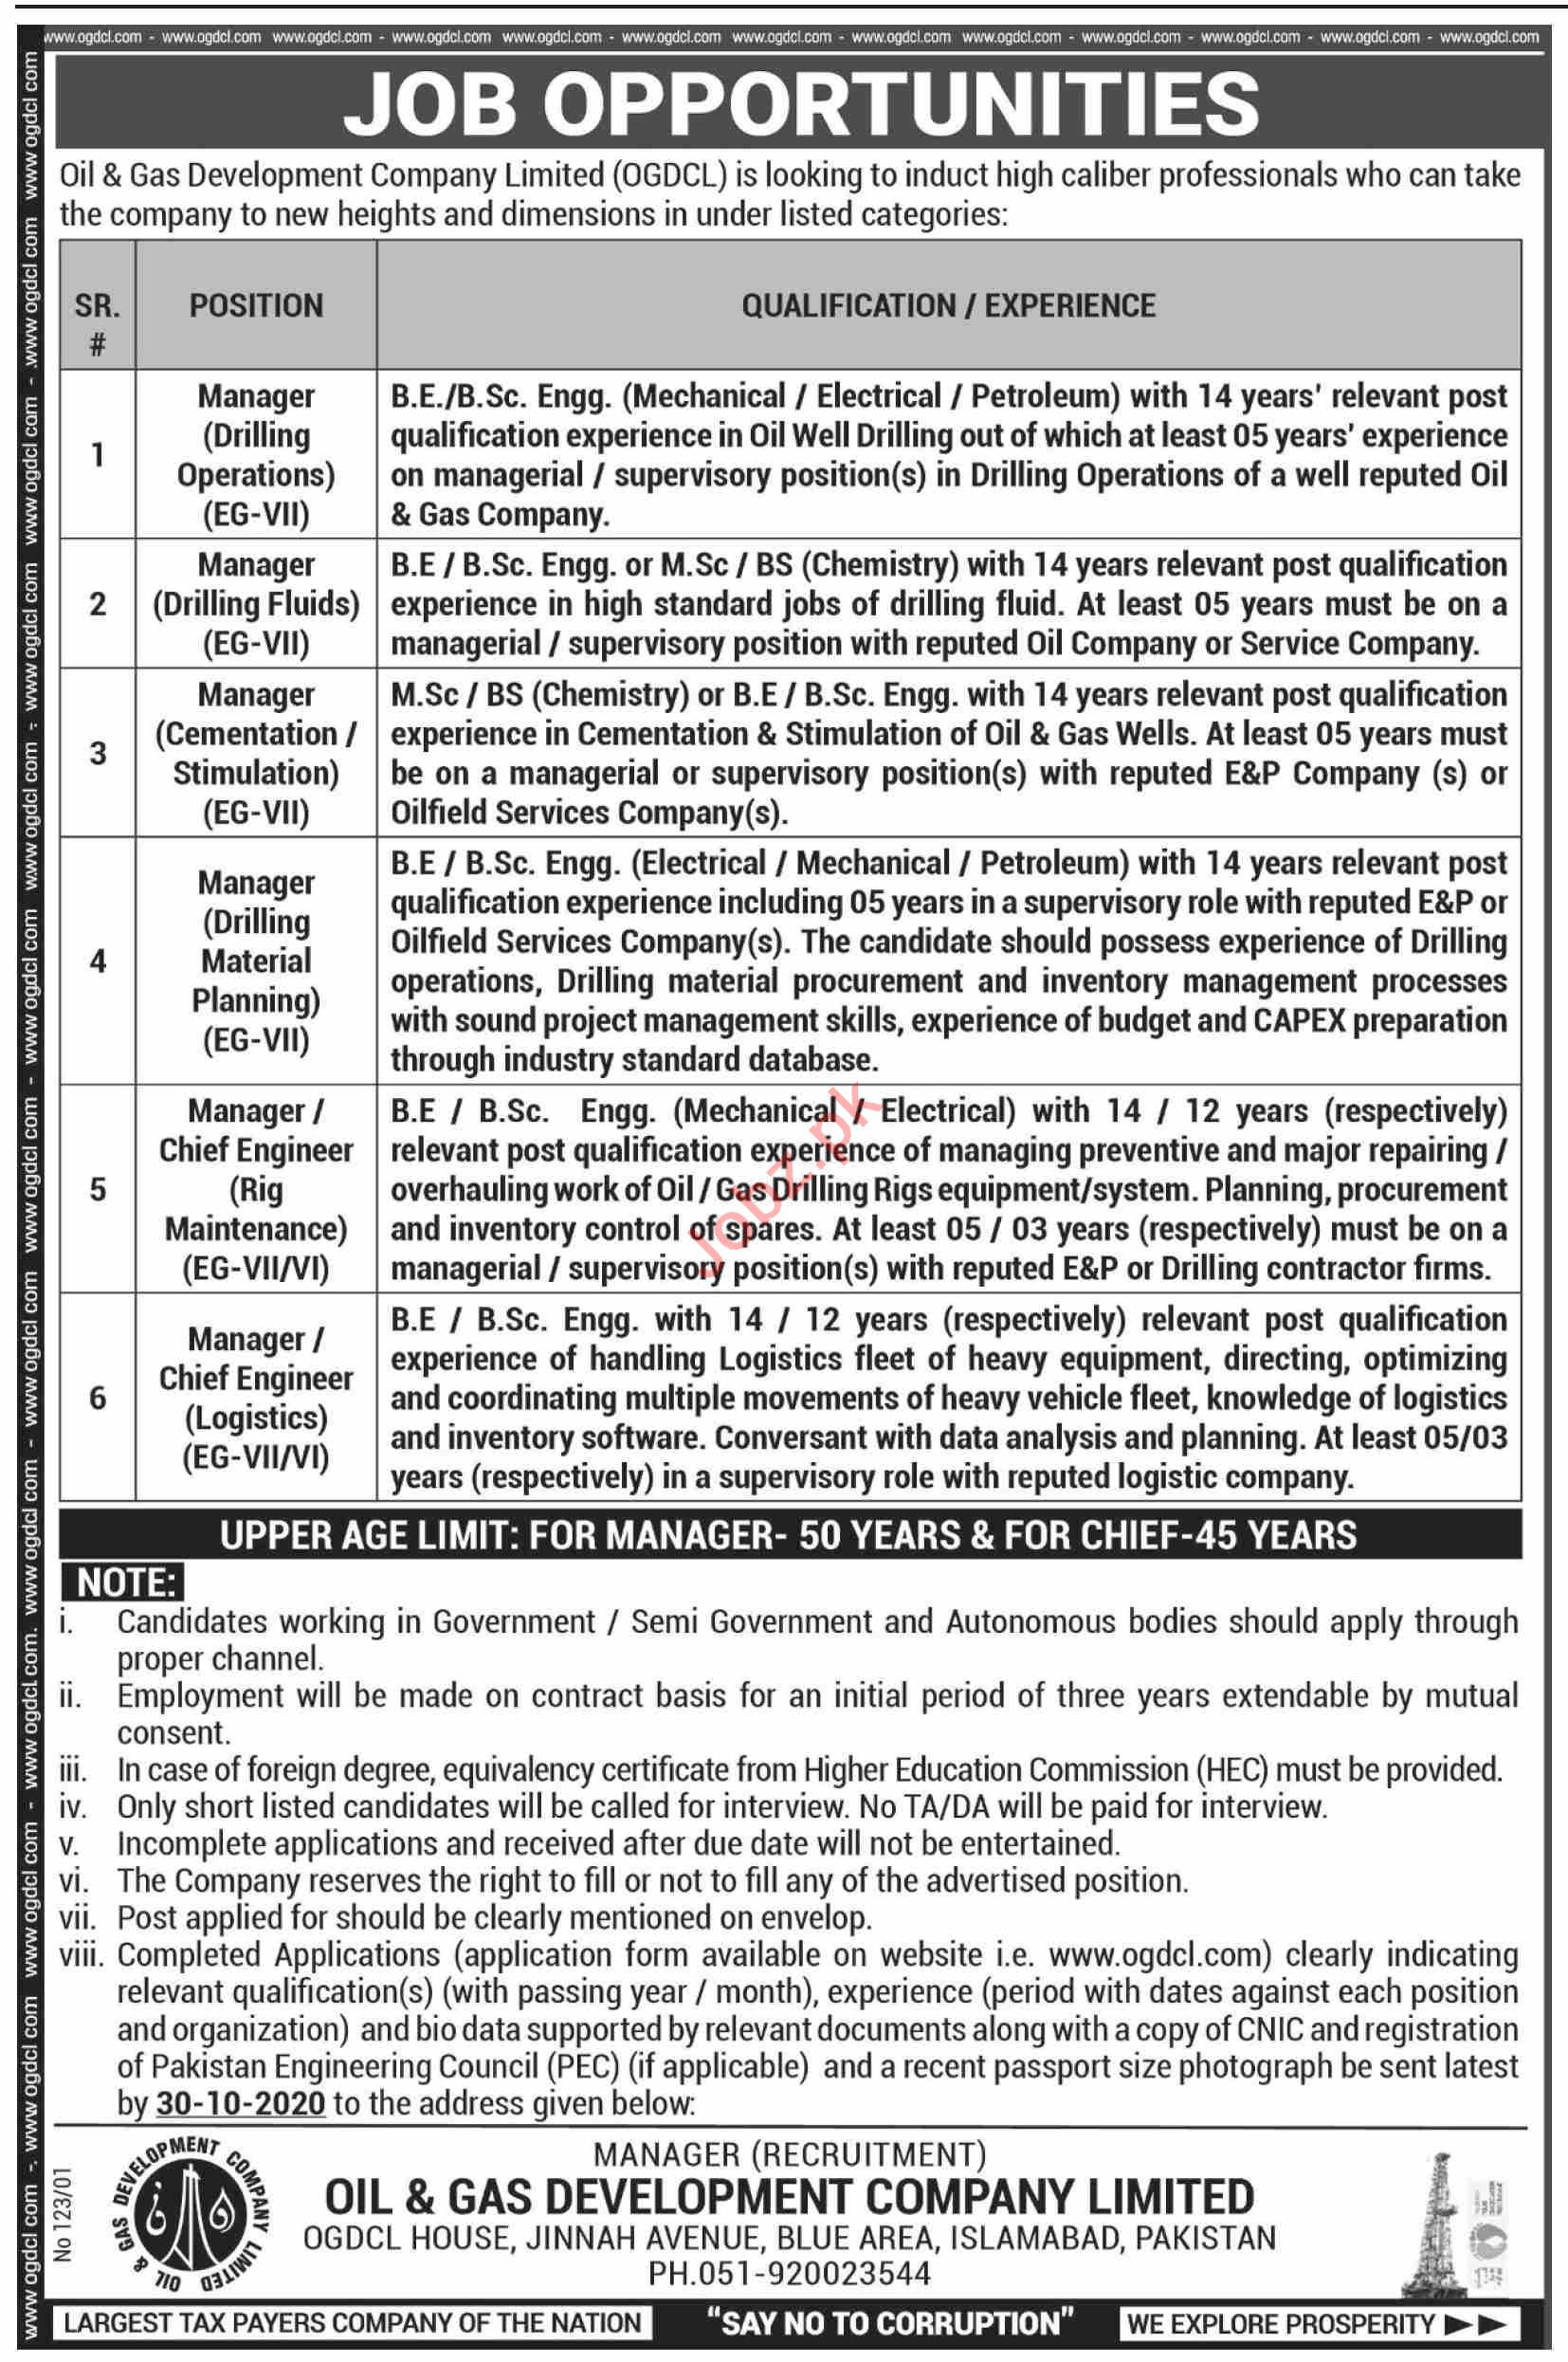 OGDCL Islamabad Jobs 2020 for Manager & Chief Engineer